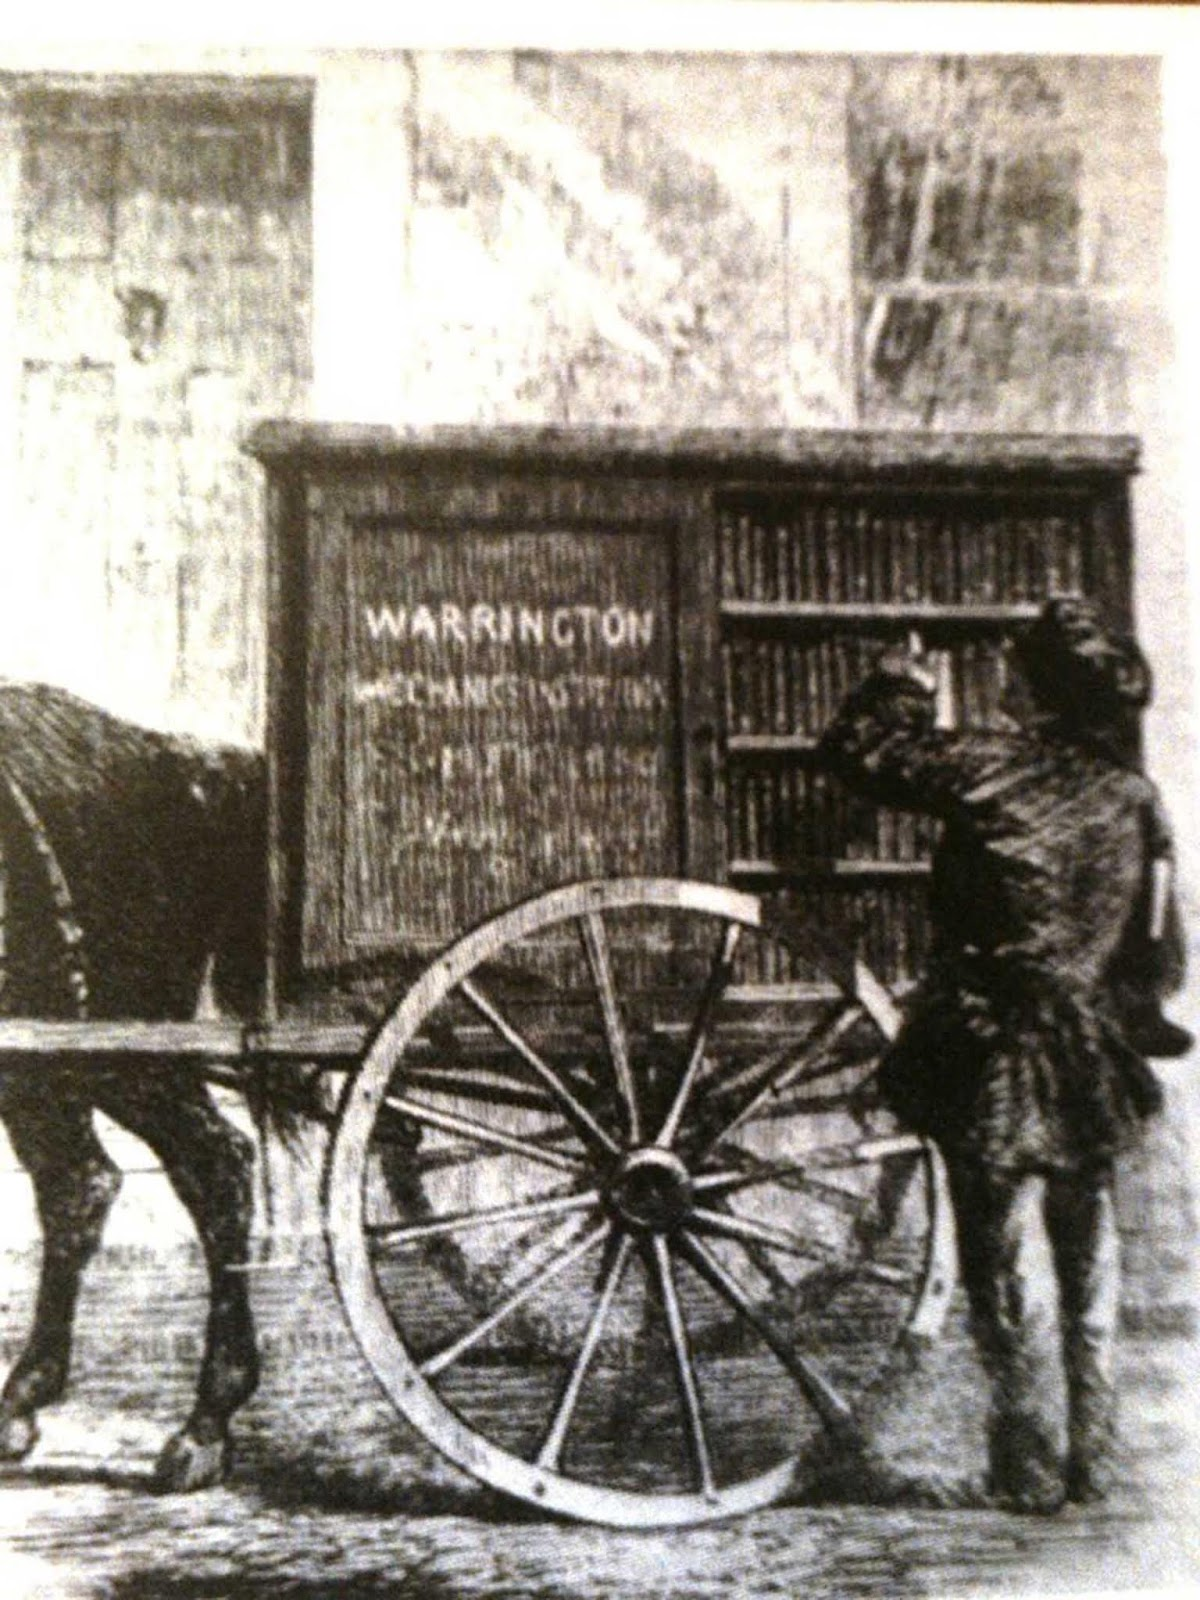 One of the earliest mobile libraries, the Warrington Mechanics' Institution Perambulating Library, from The Illustrated London News, 1860.